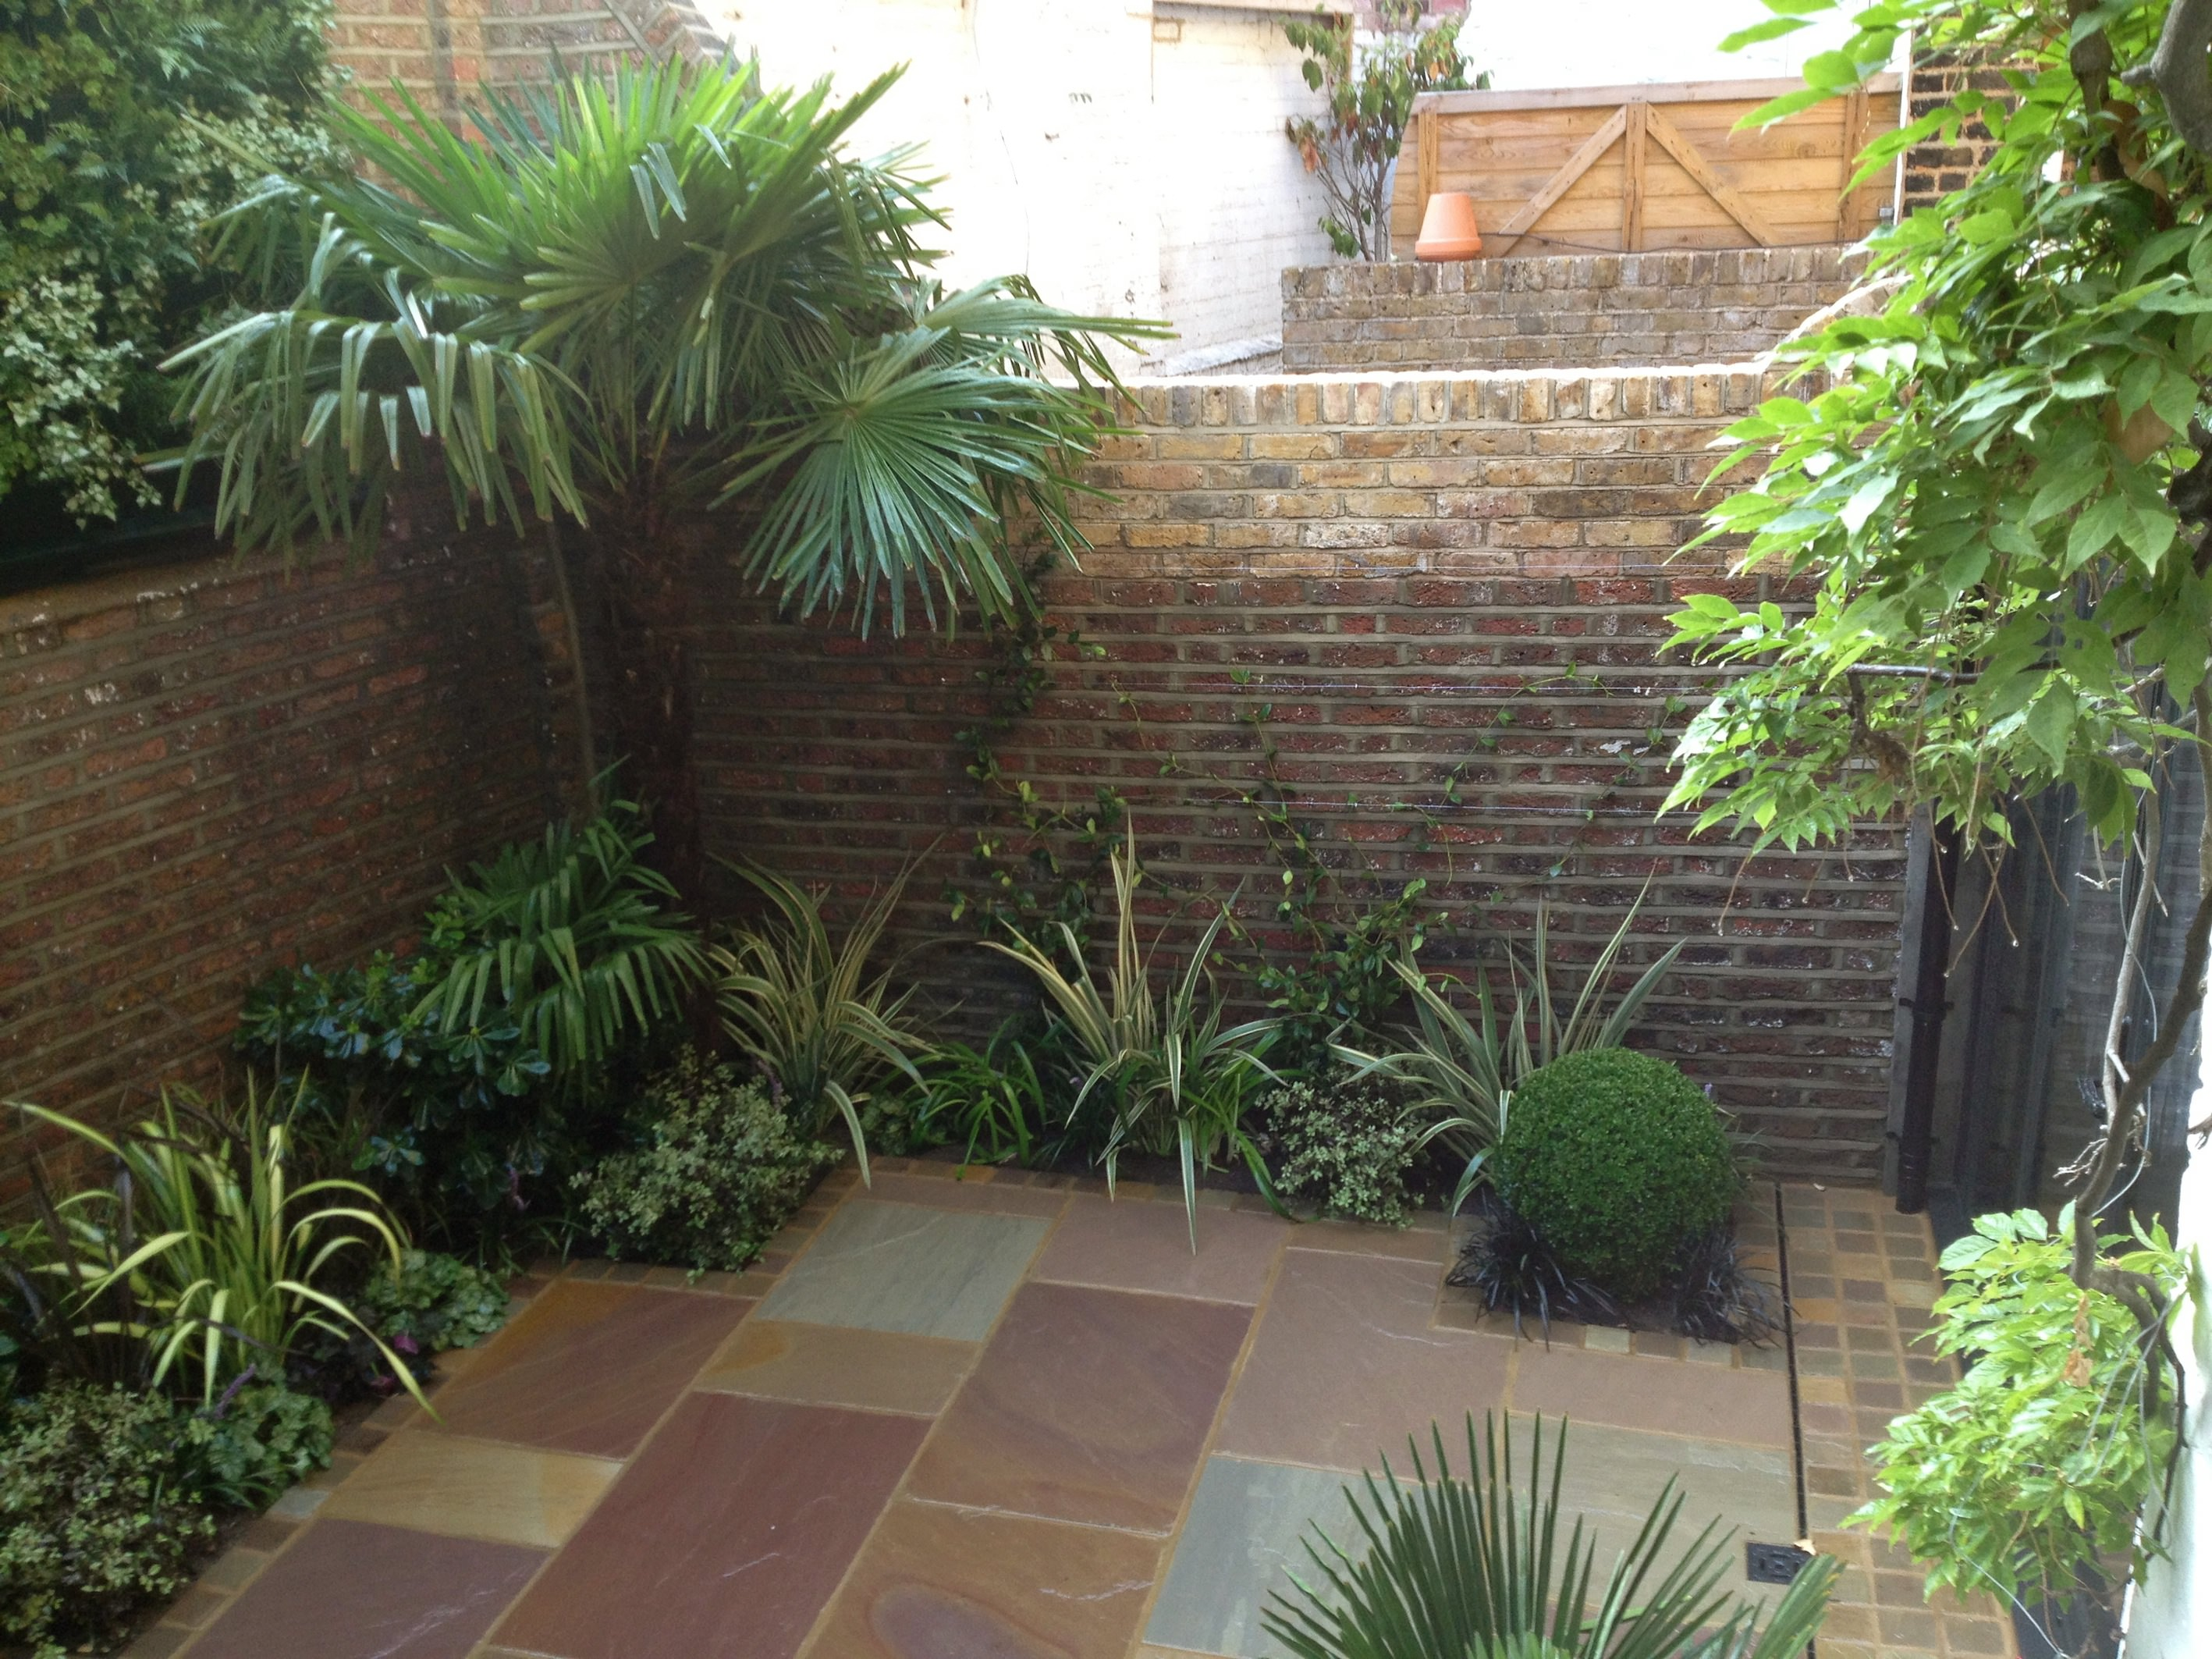 Garden Design Easy Maintenance low maintenance garden designs - garden club london